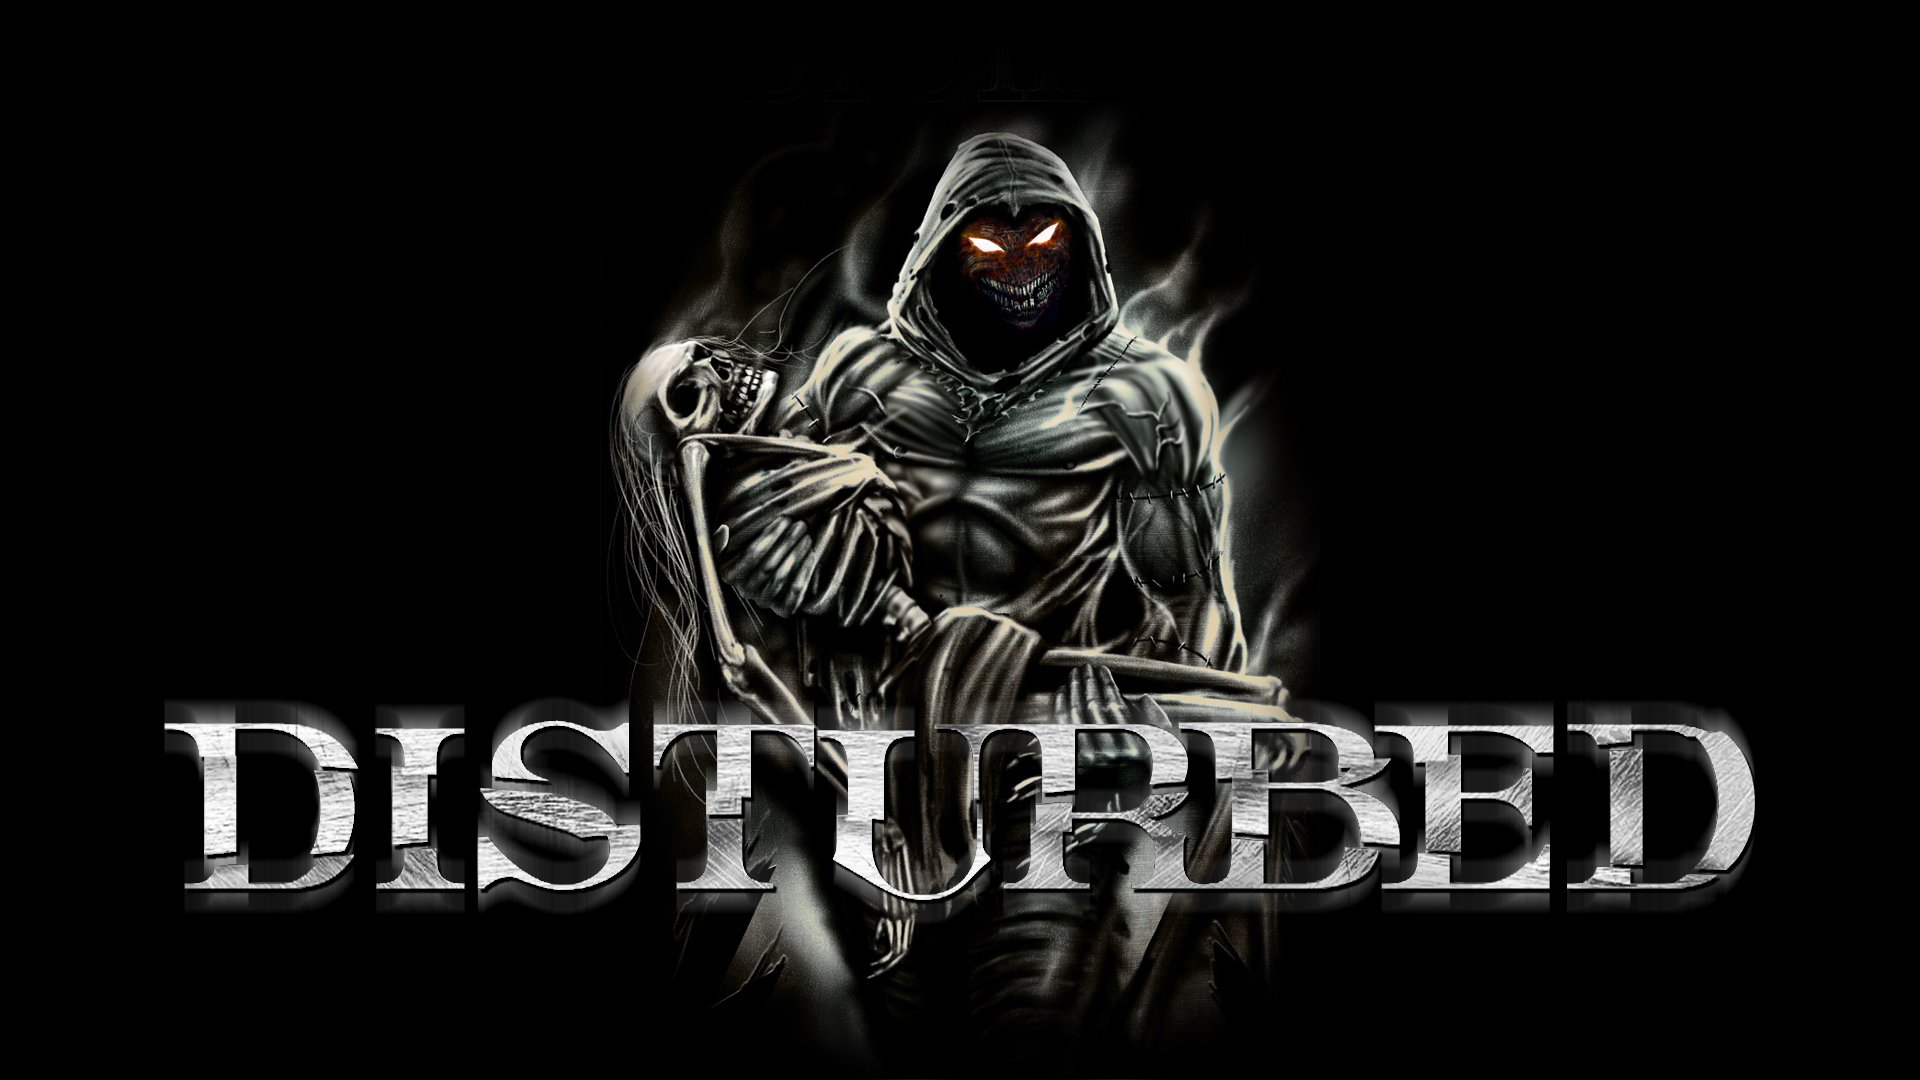 Disturbed HD Wallpapers